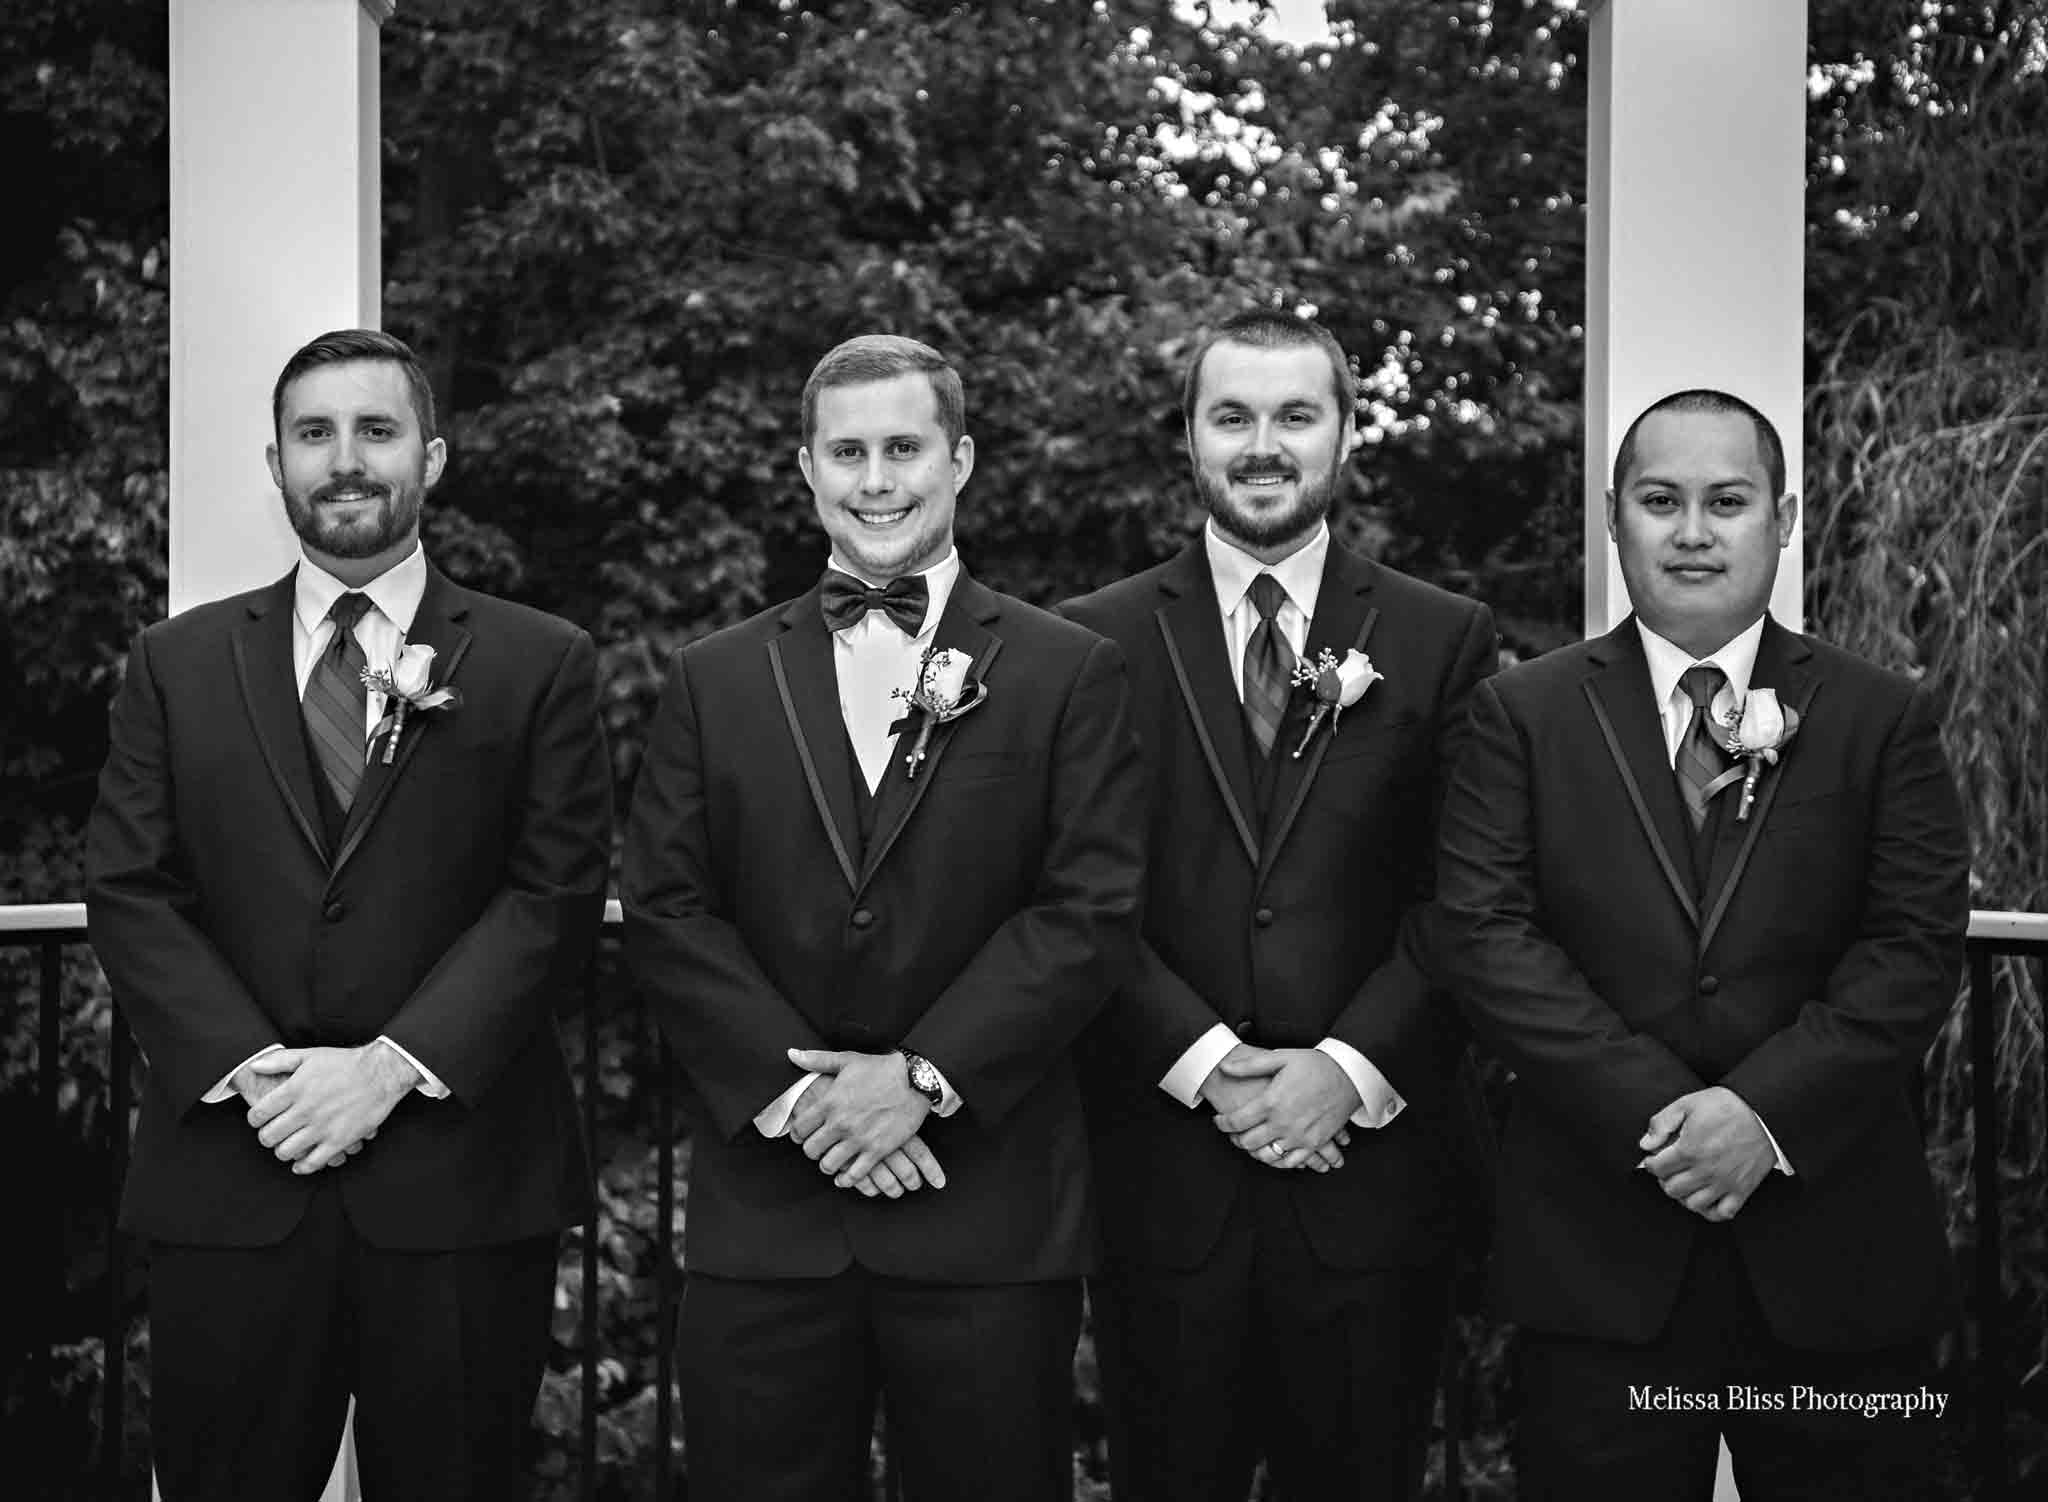 virginia-beach-wedding-photographers-norfolk-wedding-photographer-melissa-bliss-photography-groomsmen-portrait.jpg